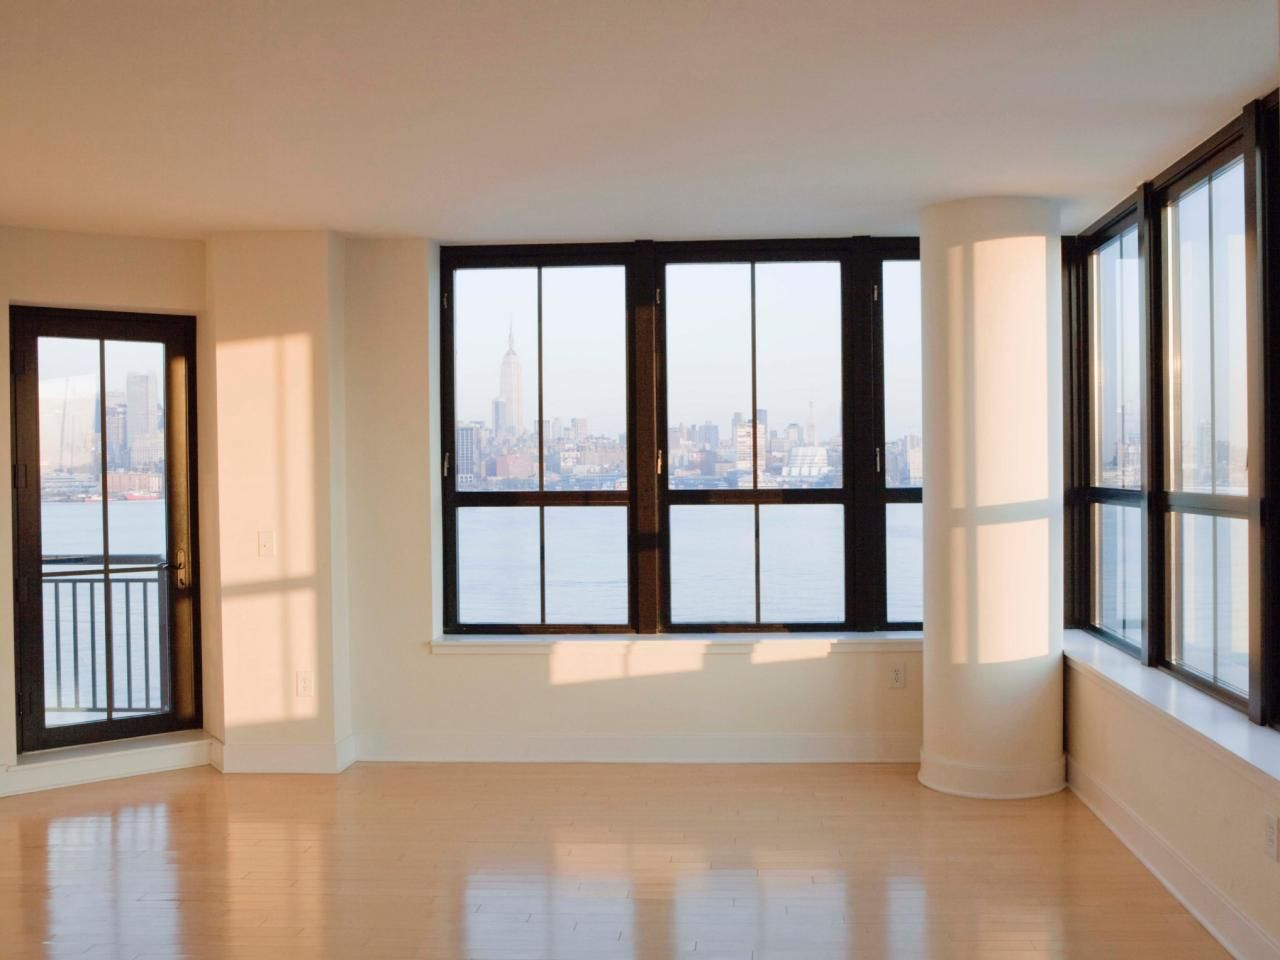 House wooden window design  empty apartment  google search  home  pinterest  empty and flats